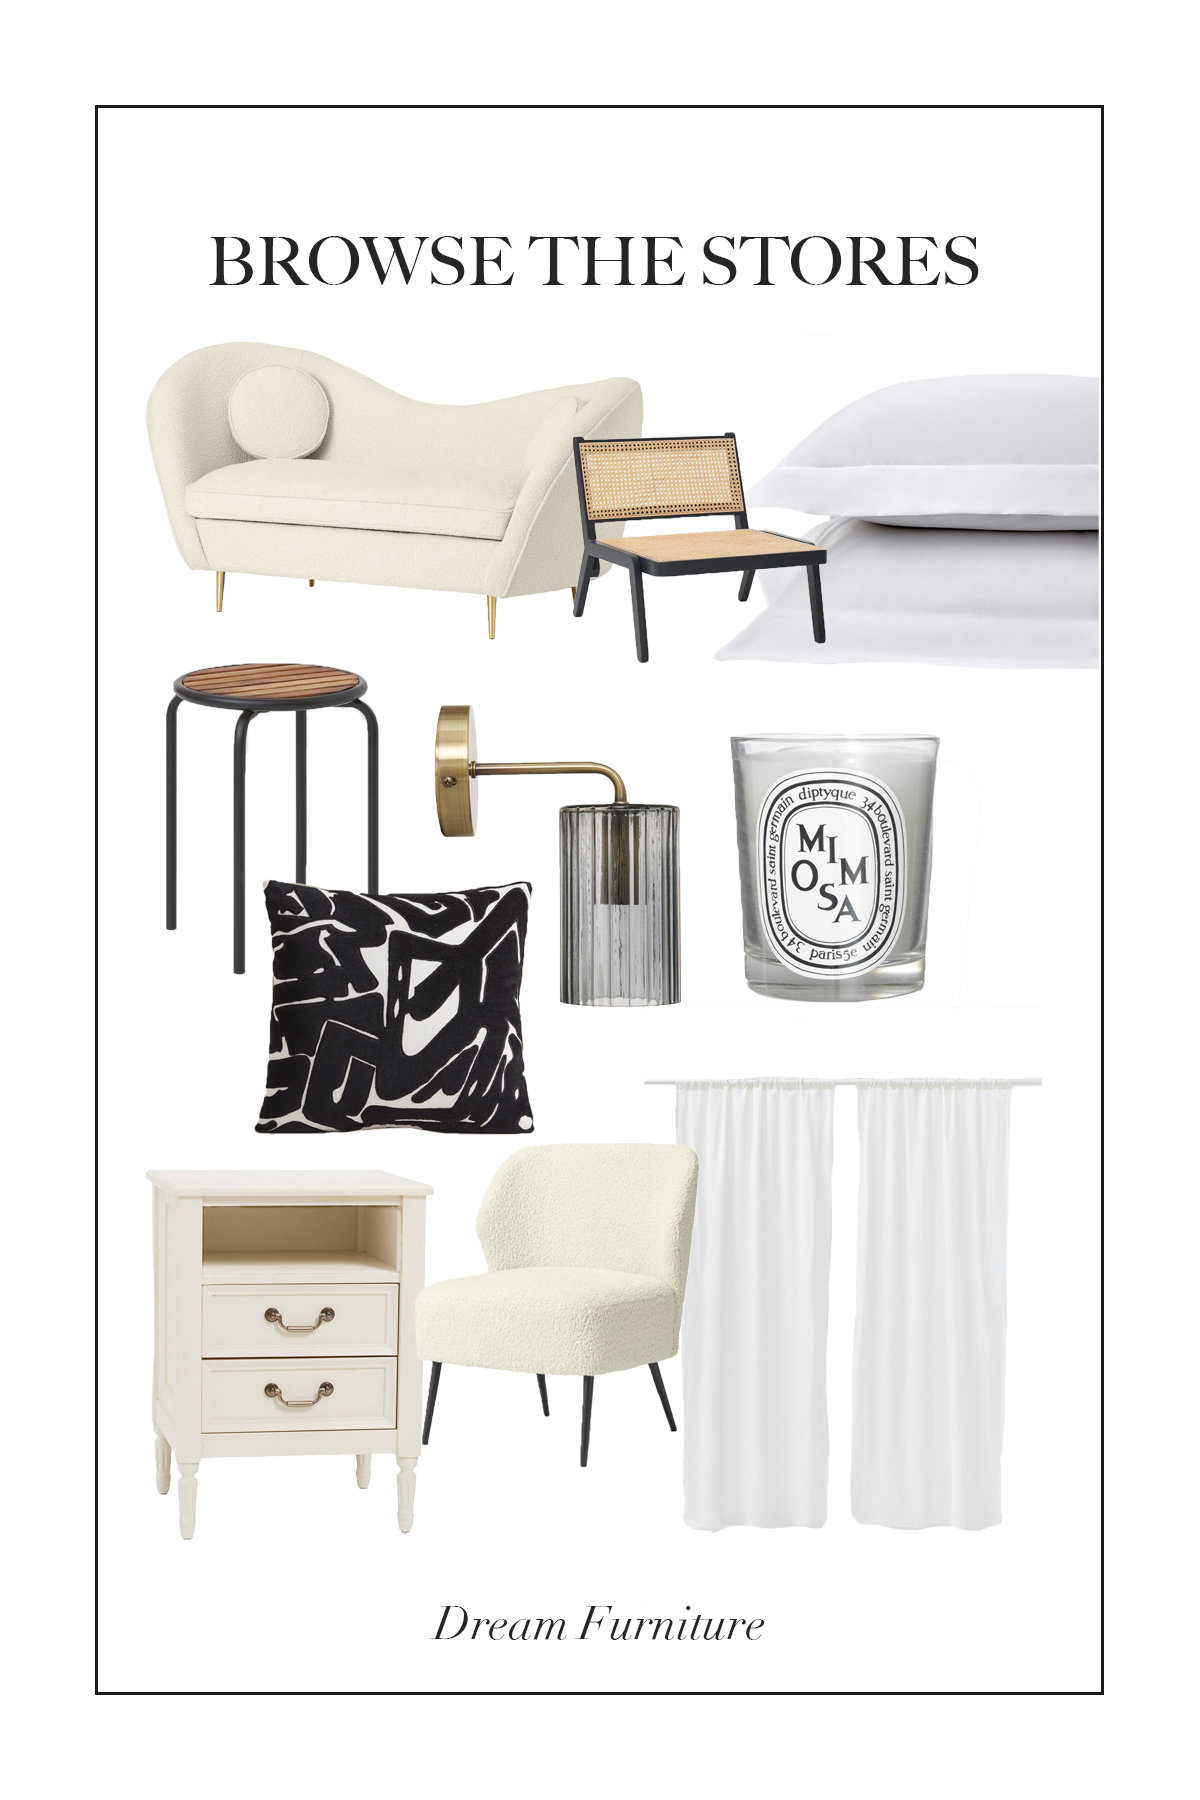 This week we are looking at all the dream furniture which I wish I could fill my dream apartment with...